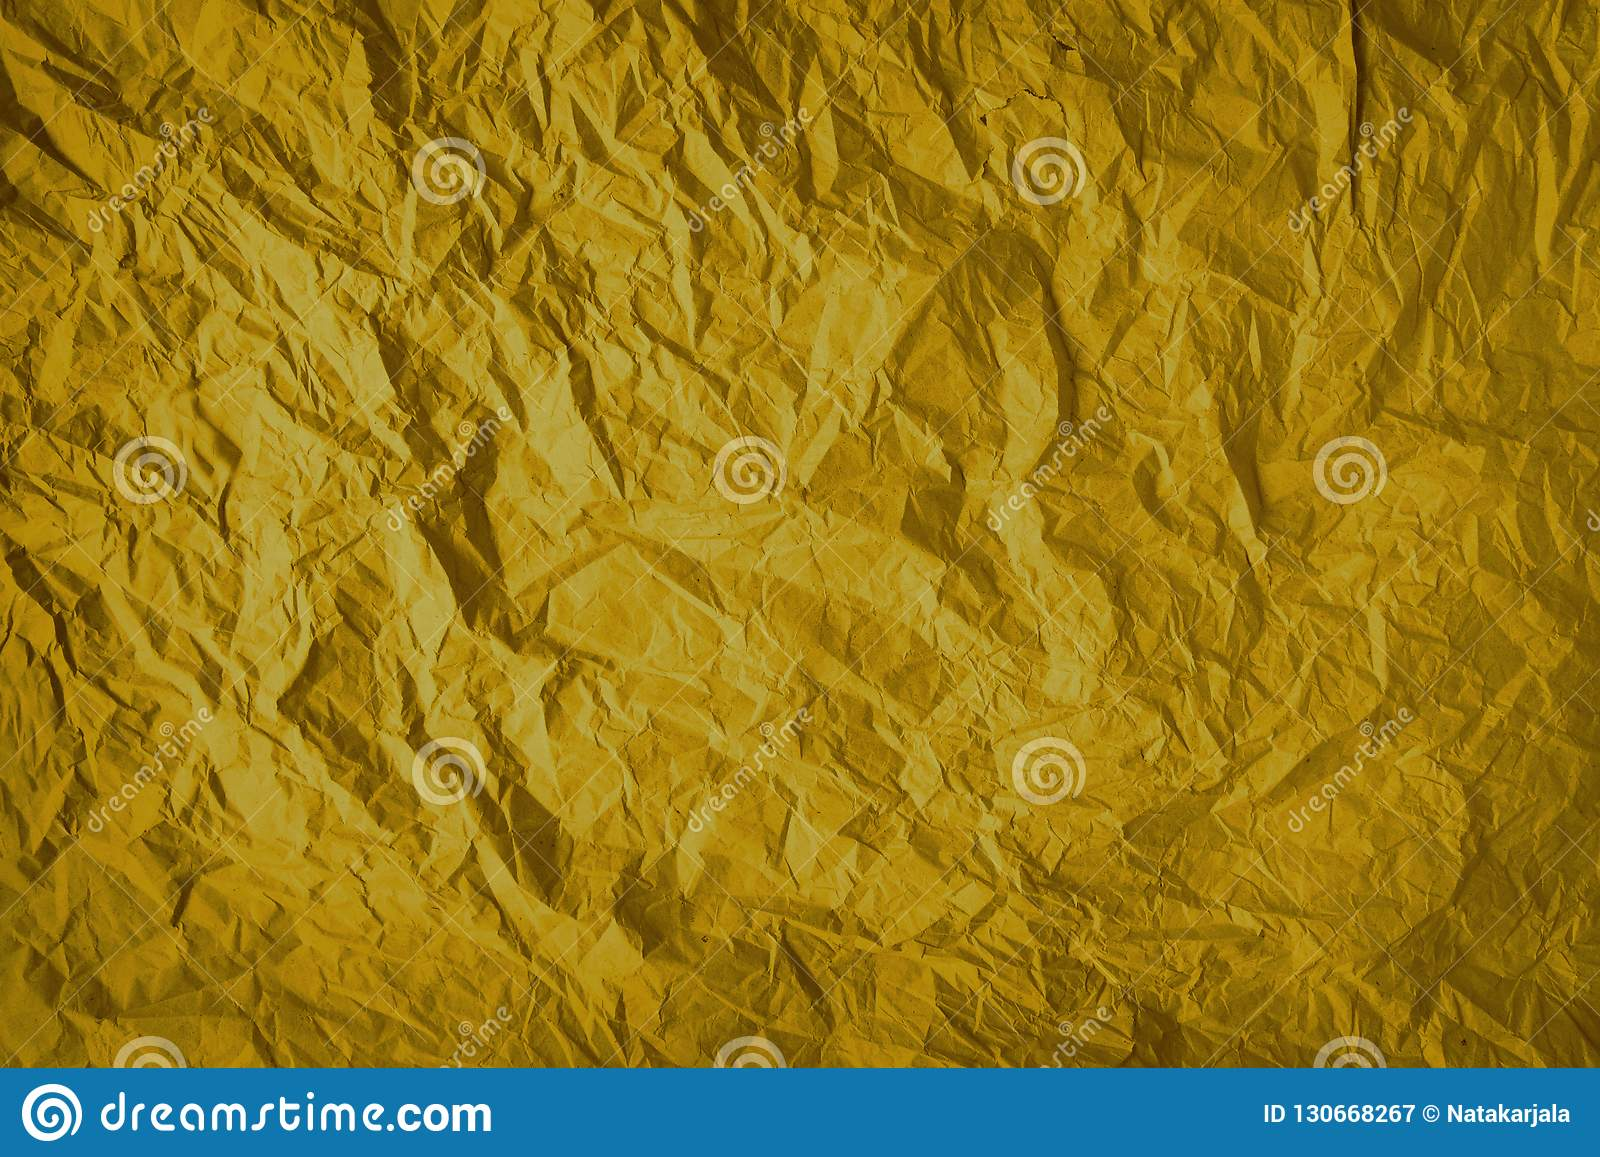 Gold crumpled wrapping paper background, texture of grey wrinkled of old vintage paper, creases on the surface of gray paper.